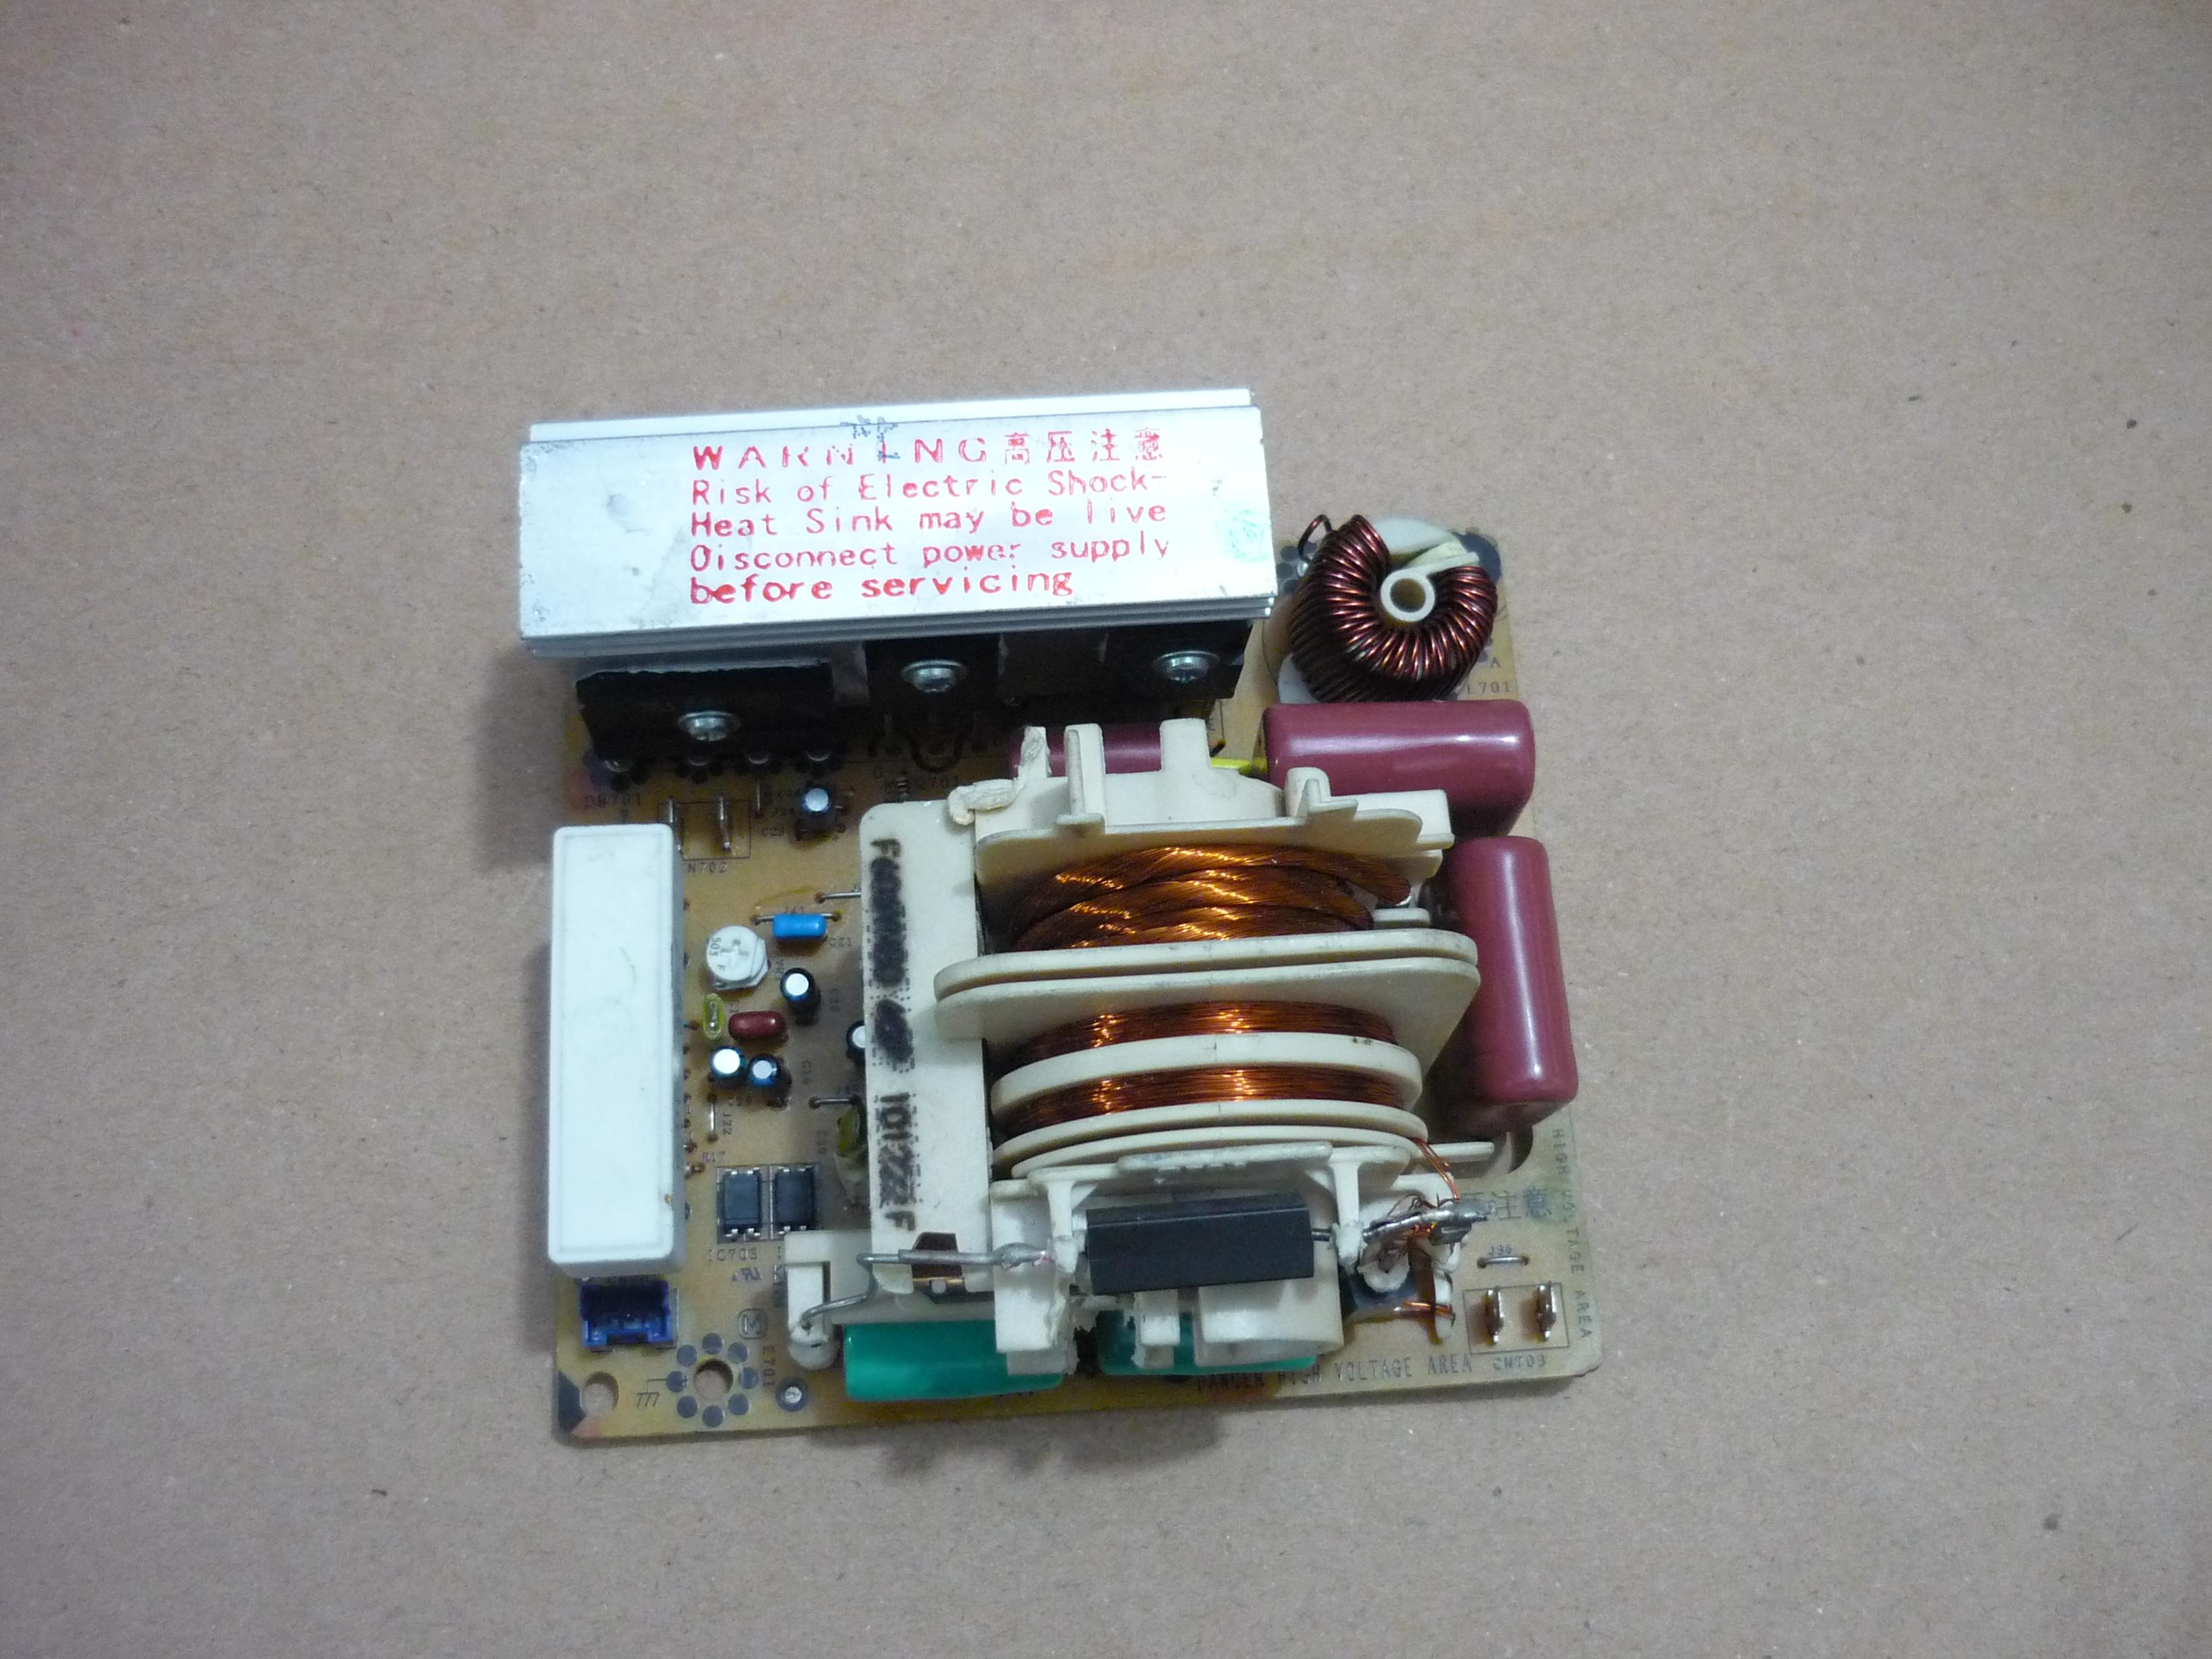 Original Panasonic microwave inverter board for F6645M300GP F6645M301GP F6645M303GP305 302BP Microwave oven parts